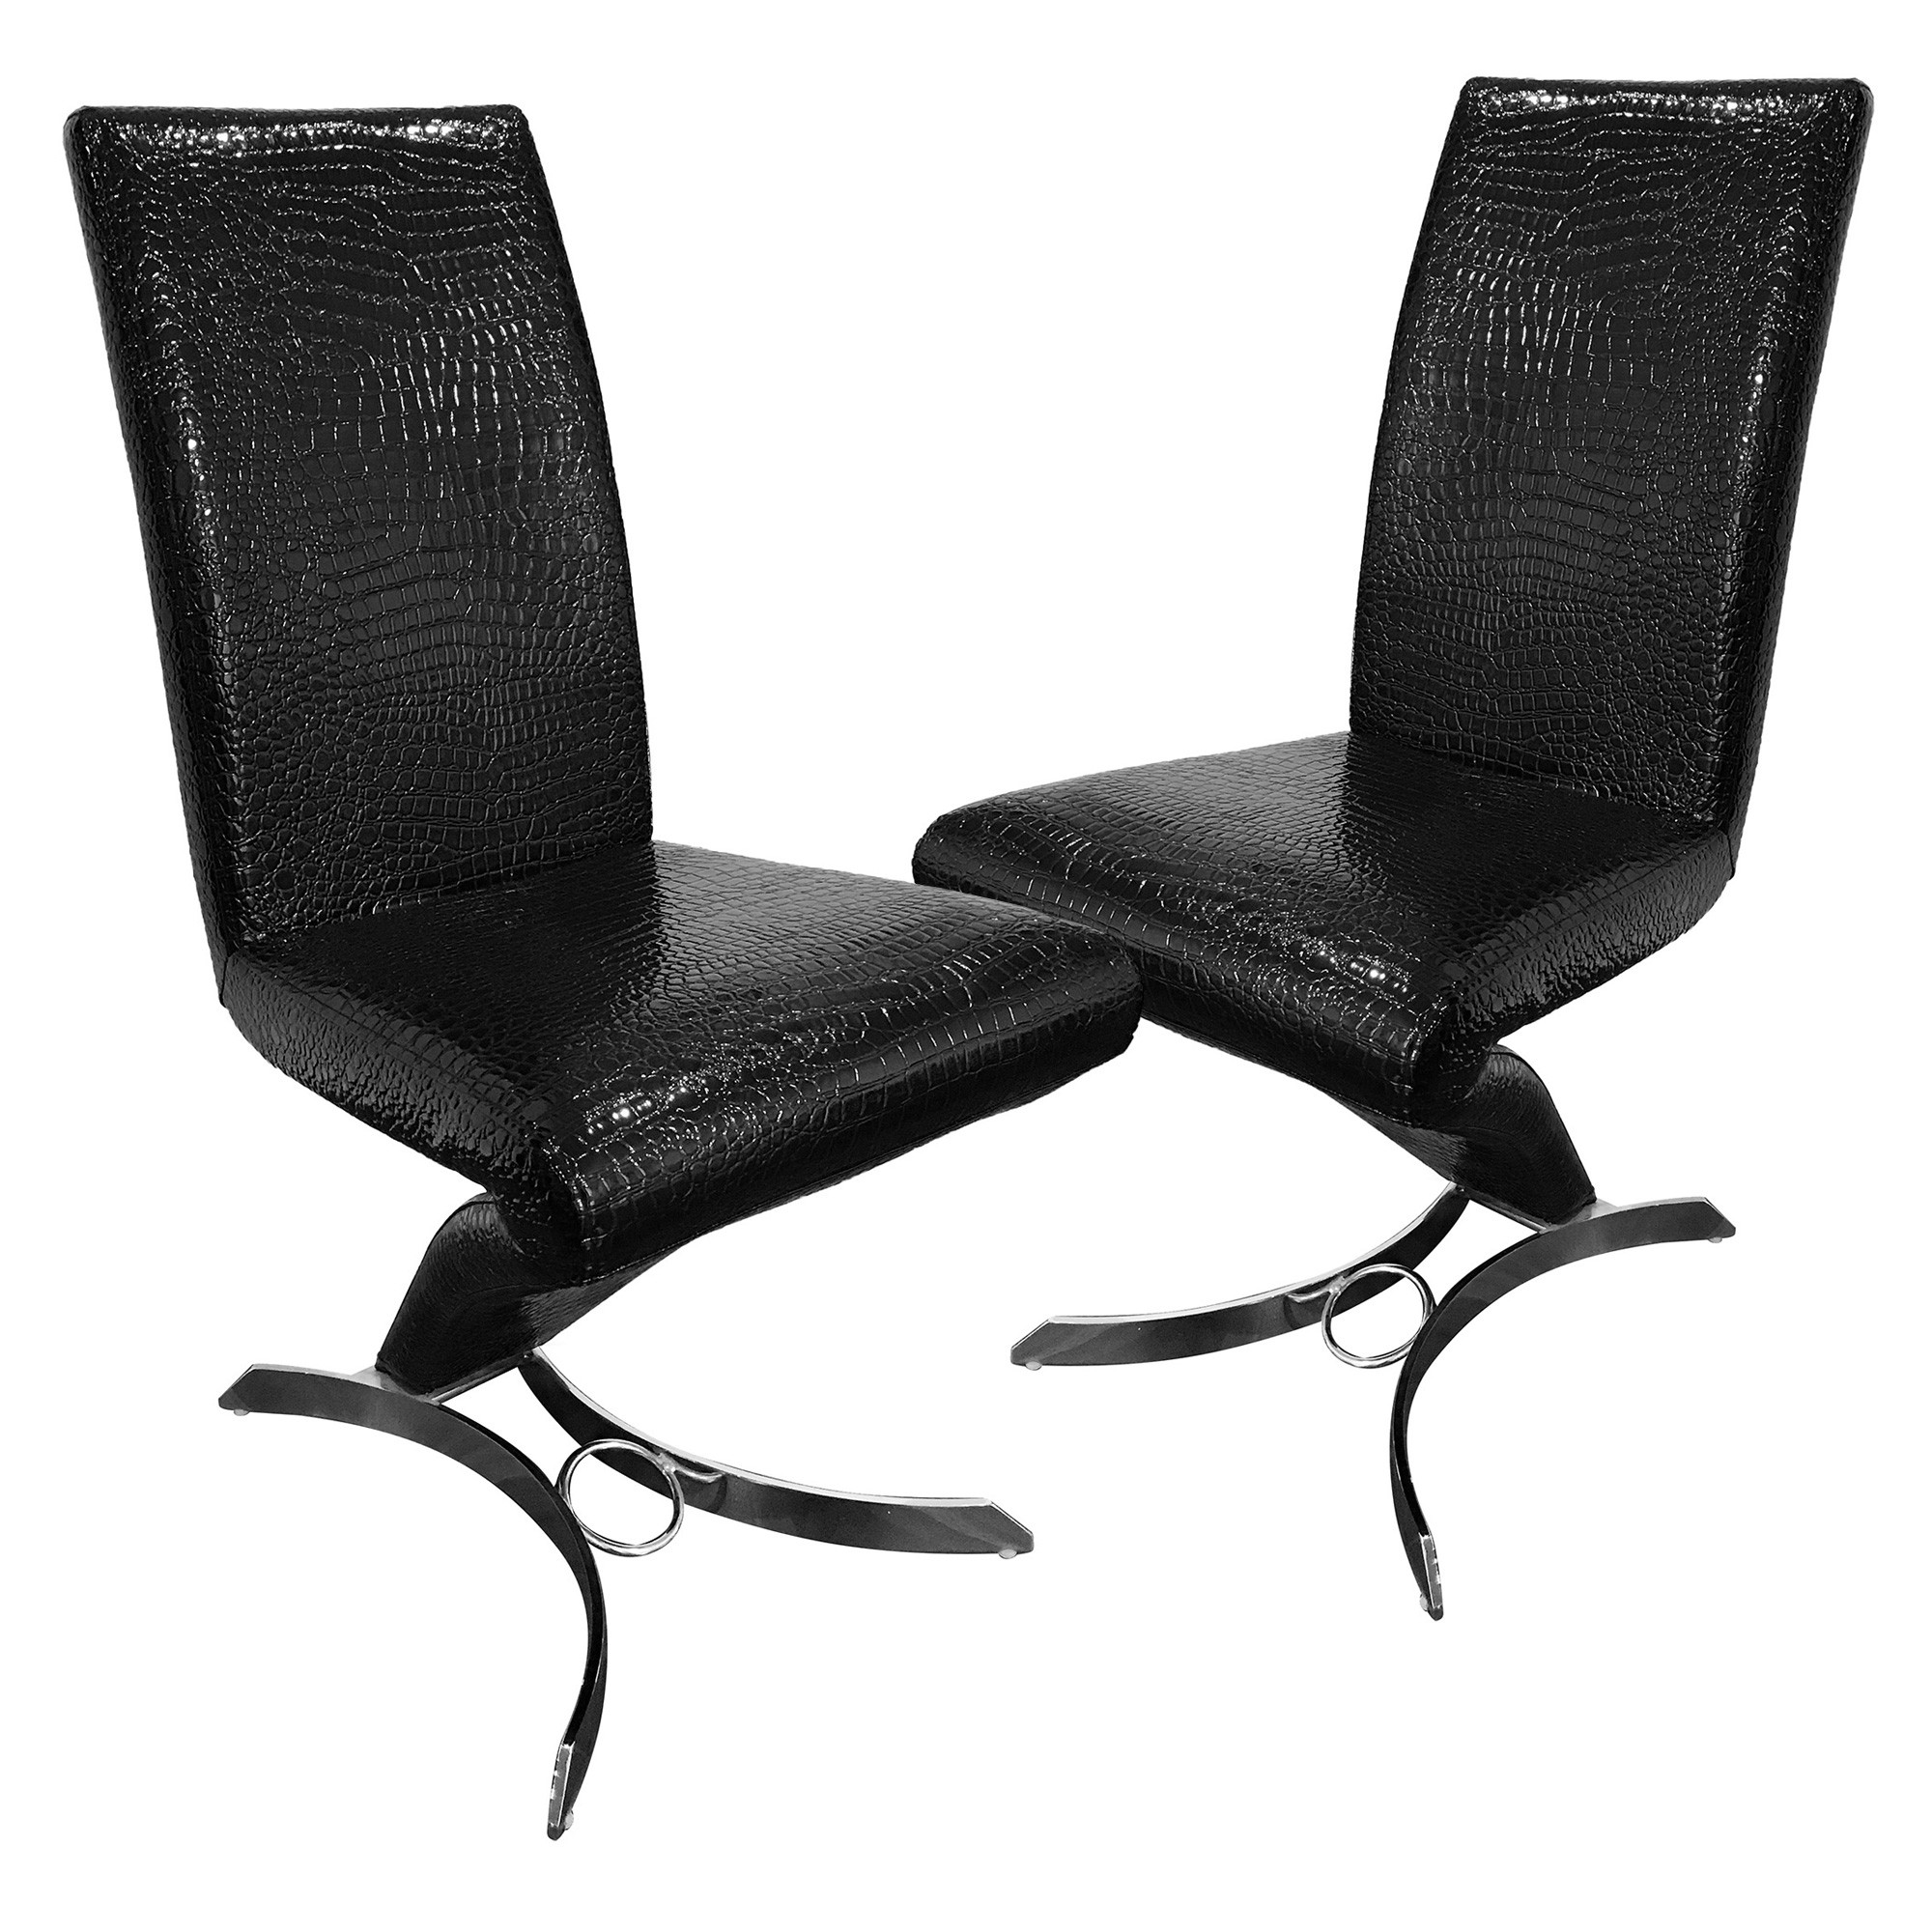 Set of 2 Luson Mock Croc PU Leather Dining Chairs, Black